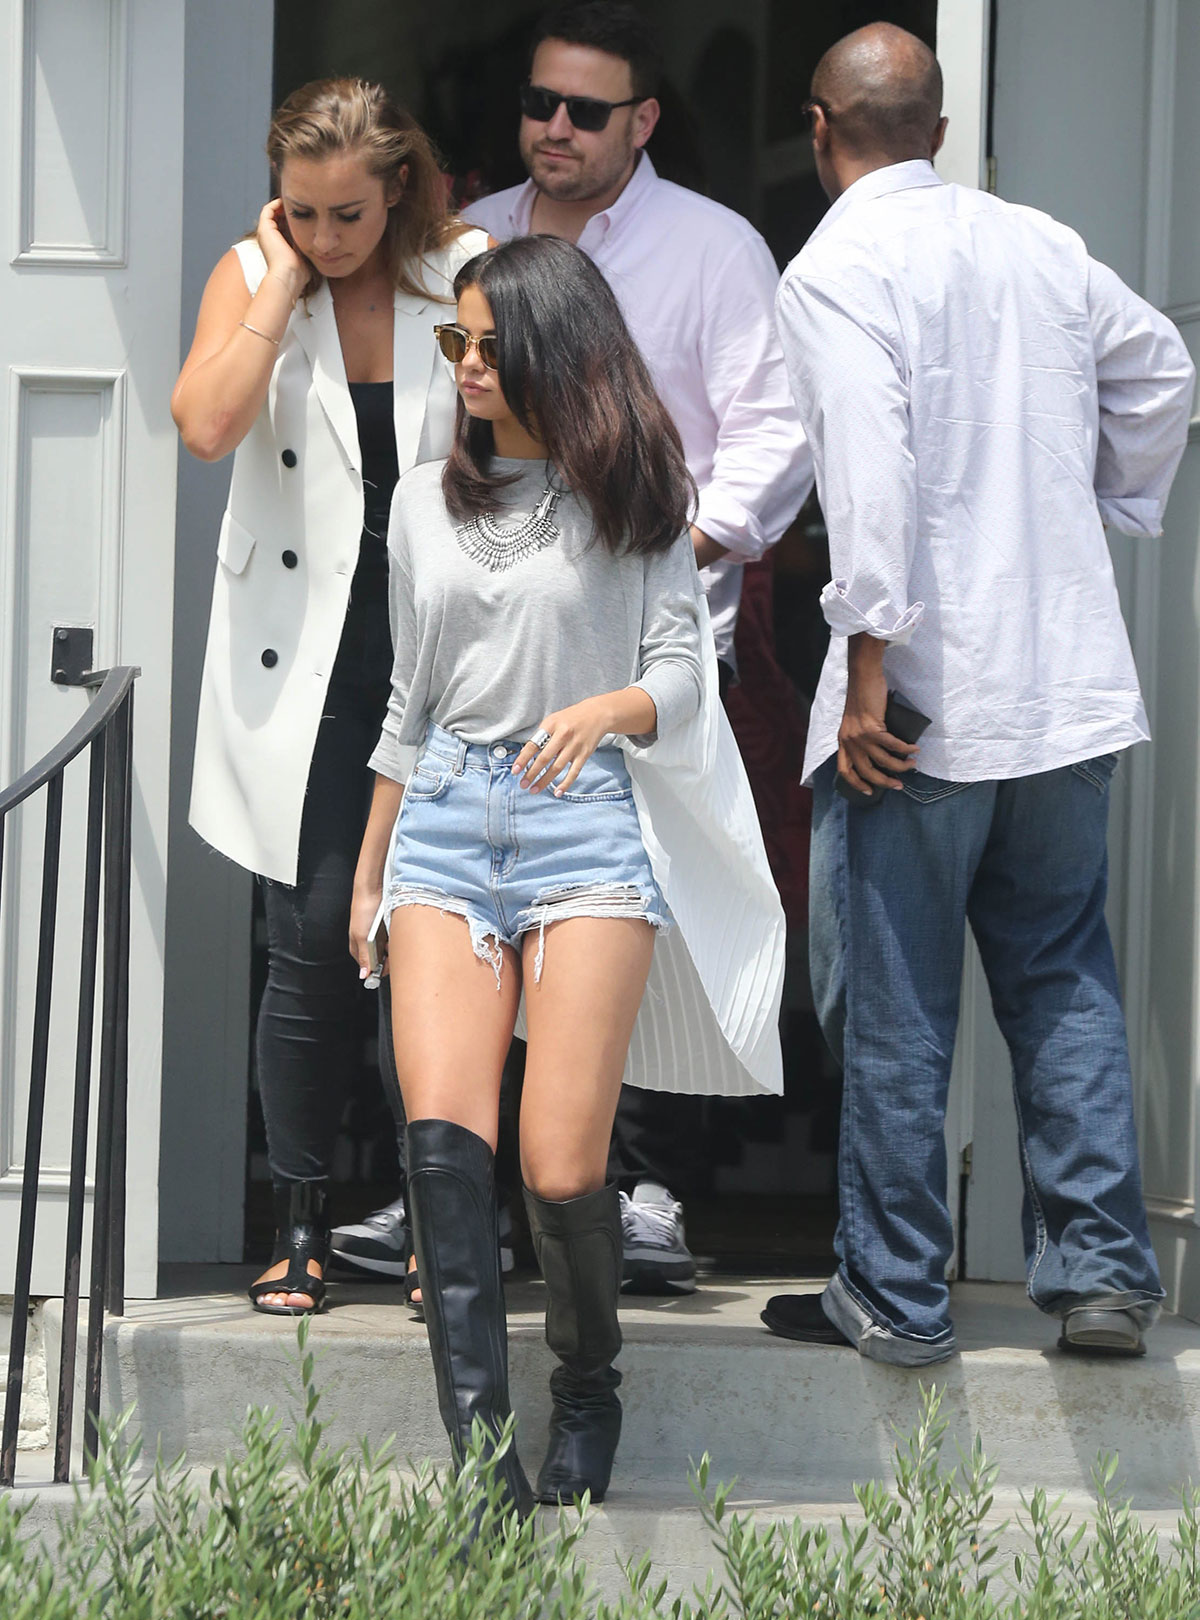 Selena Gomez meeting friends for lunch at Gracias Madre